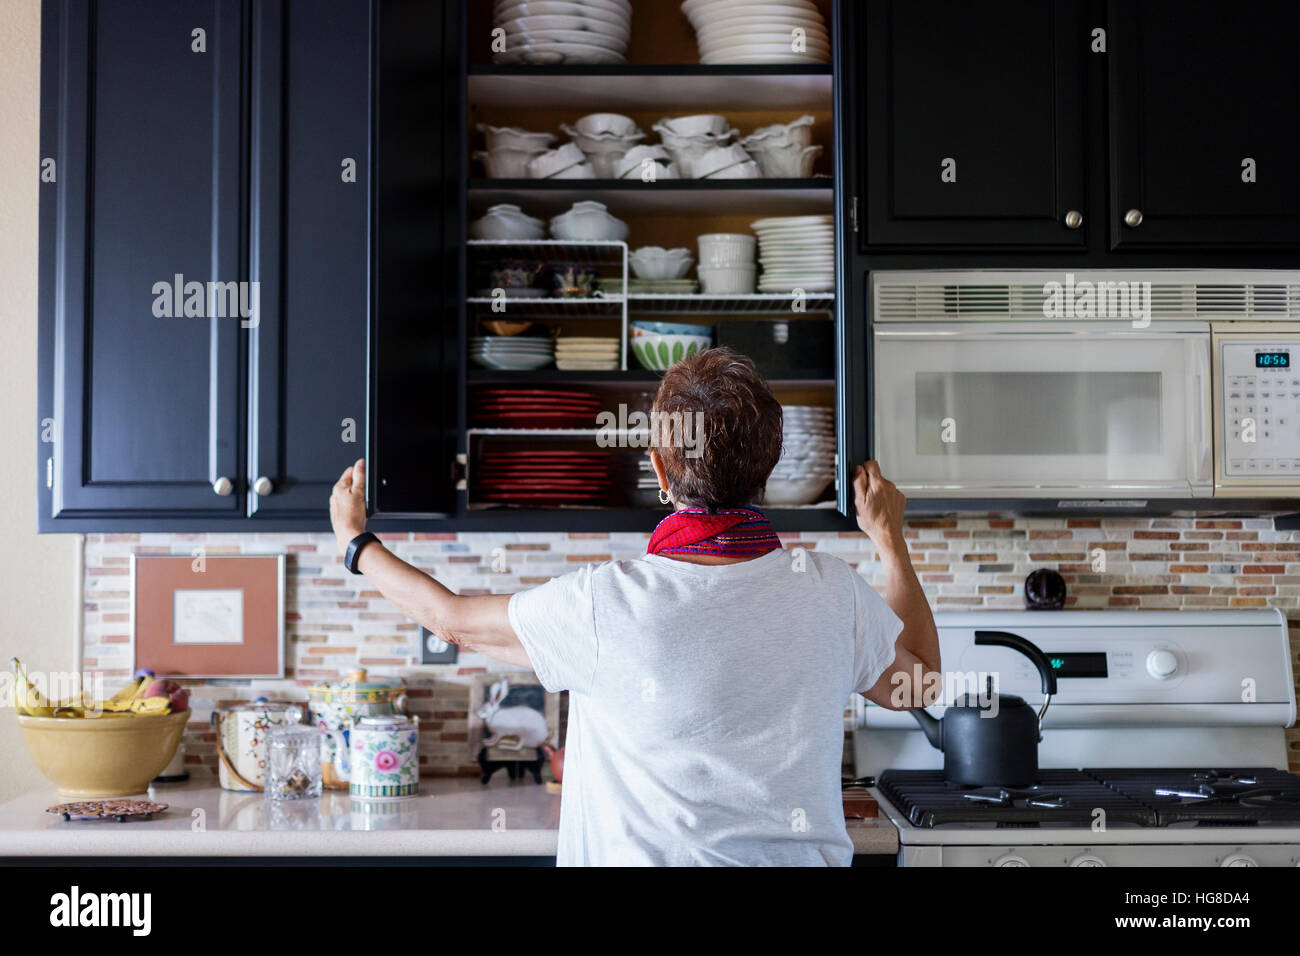 Rear view of woman checking cabinet in kitchen Stock Photo